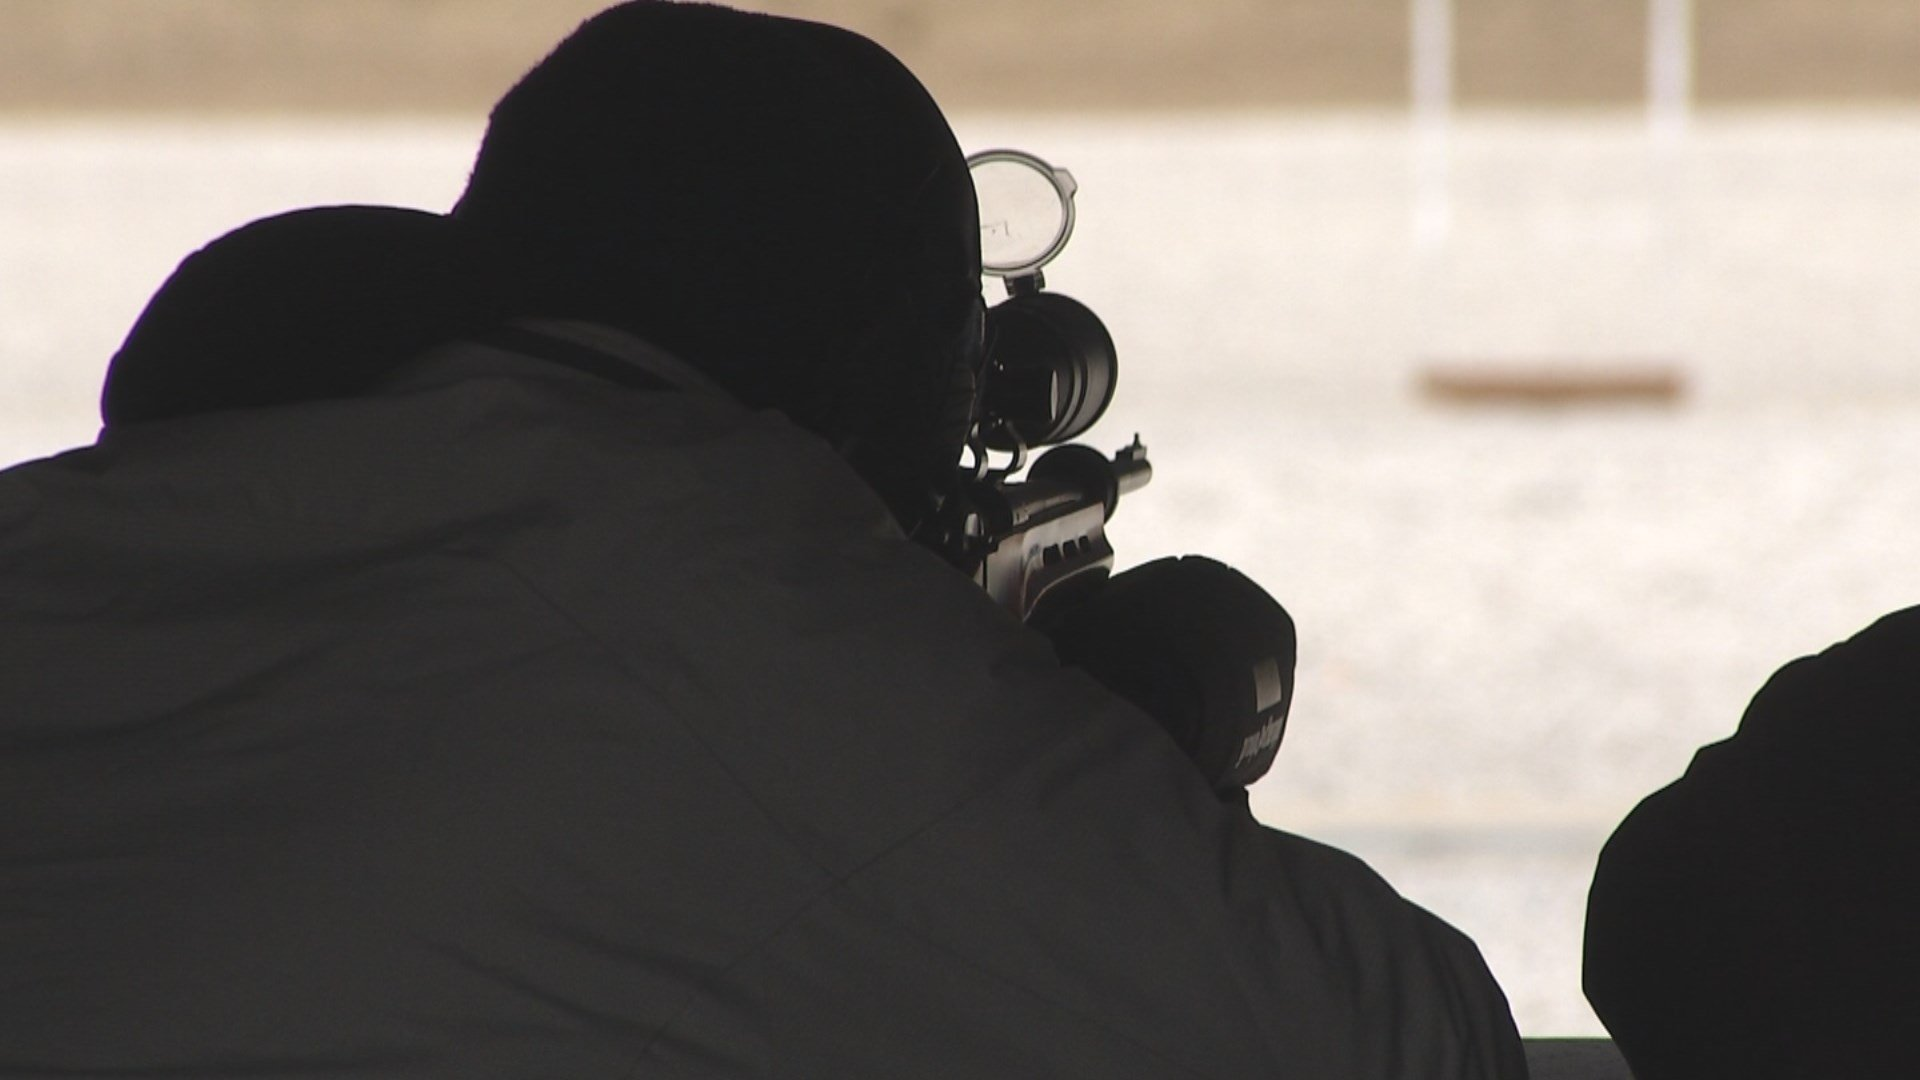 Students in a hunter safety class at Smithville High School were at the shooting range Monday.  It's something the school has offered for years. But now, some parents have concerns about their kids handling firearms. (KCTV5)